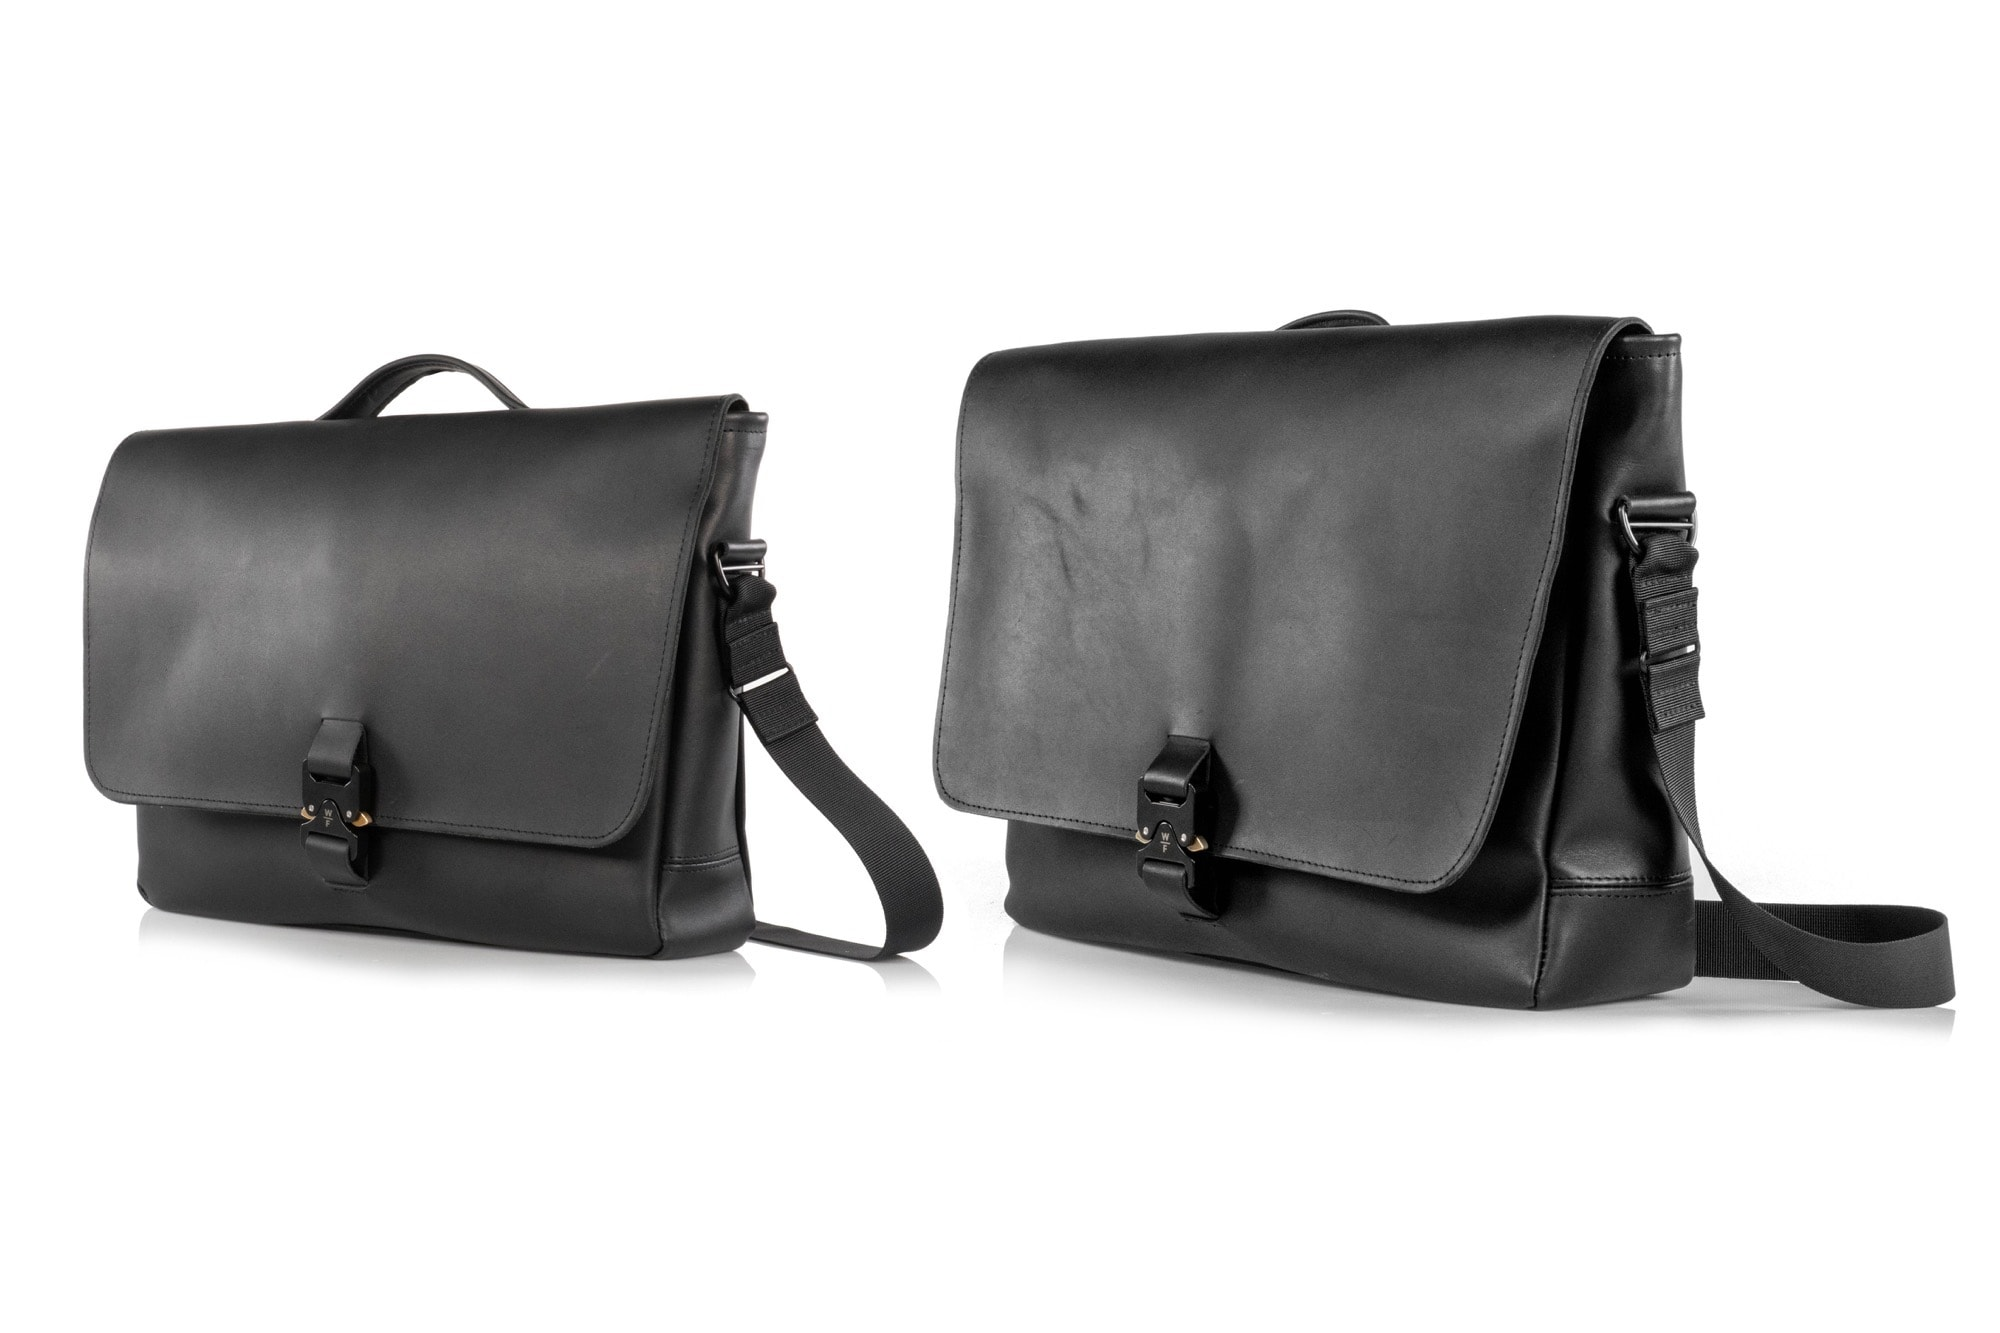 WaterField Designs Executive Leather Messenger comes in two sizes.